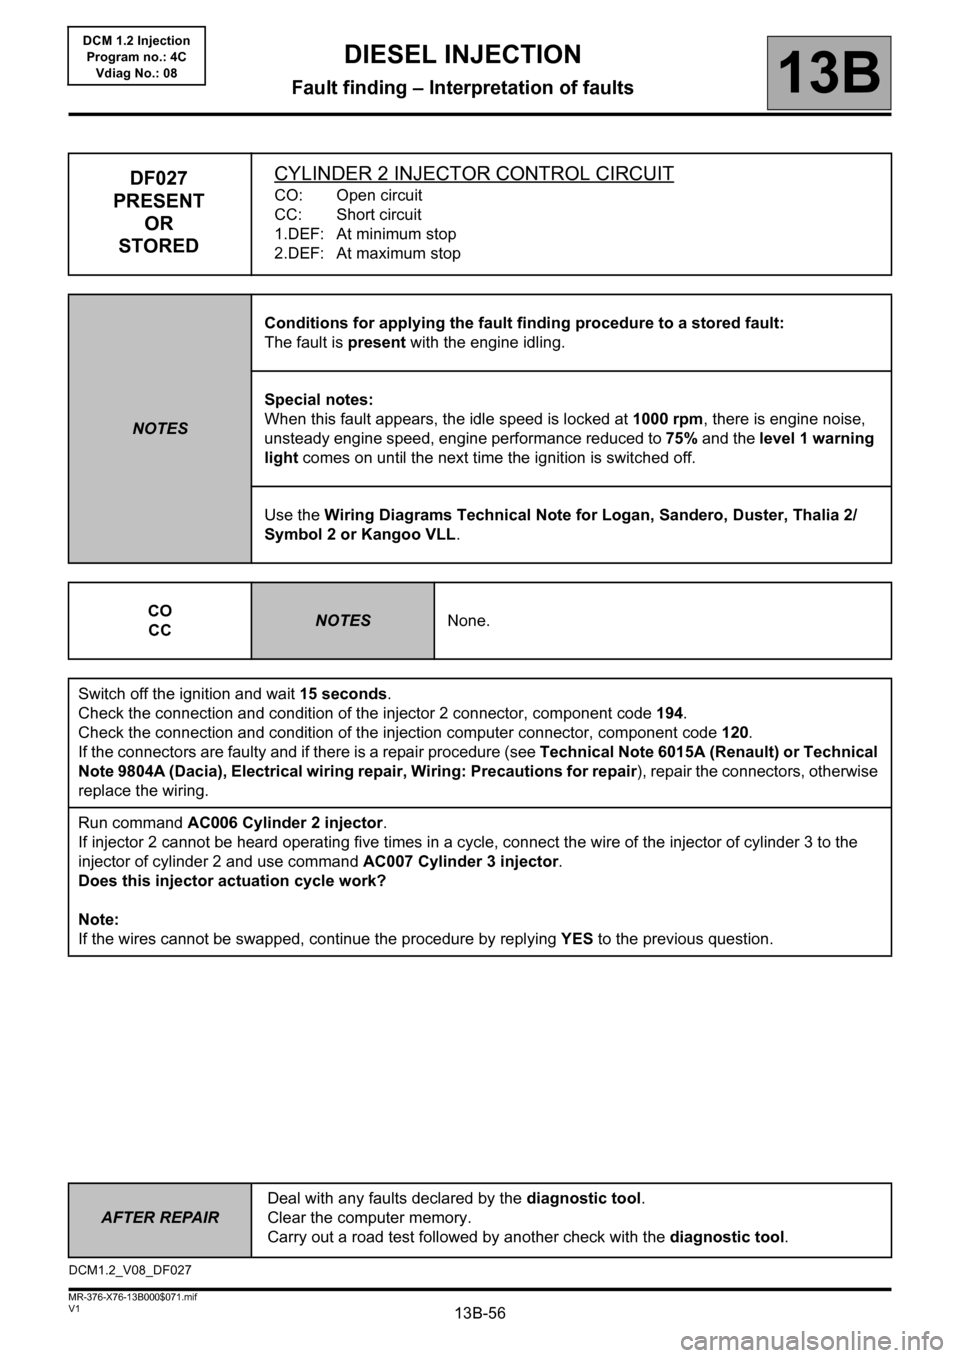 RENAULT KANGOO 2013 X61 / 2.G Diesel DCM 1.2 Injection Workshop Manual, Page 56